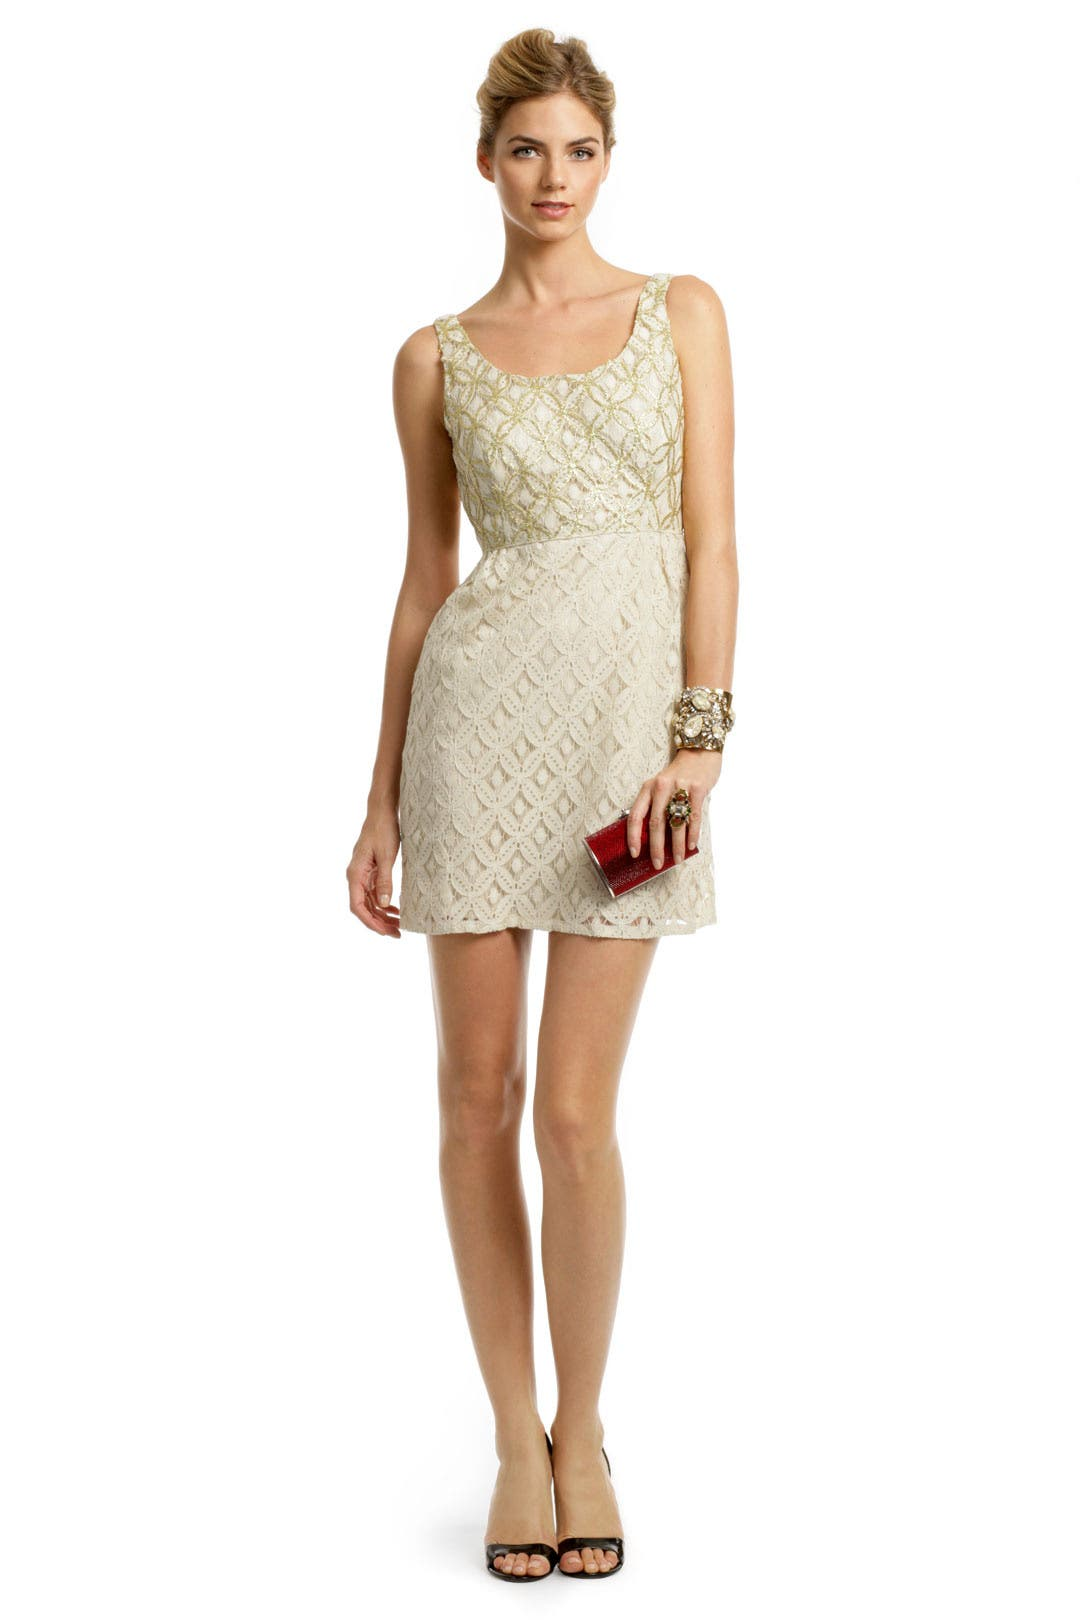 Creme Brulee Scoop Dress by Anna Sui